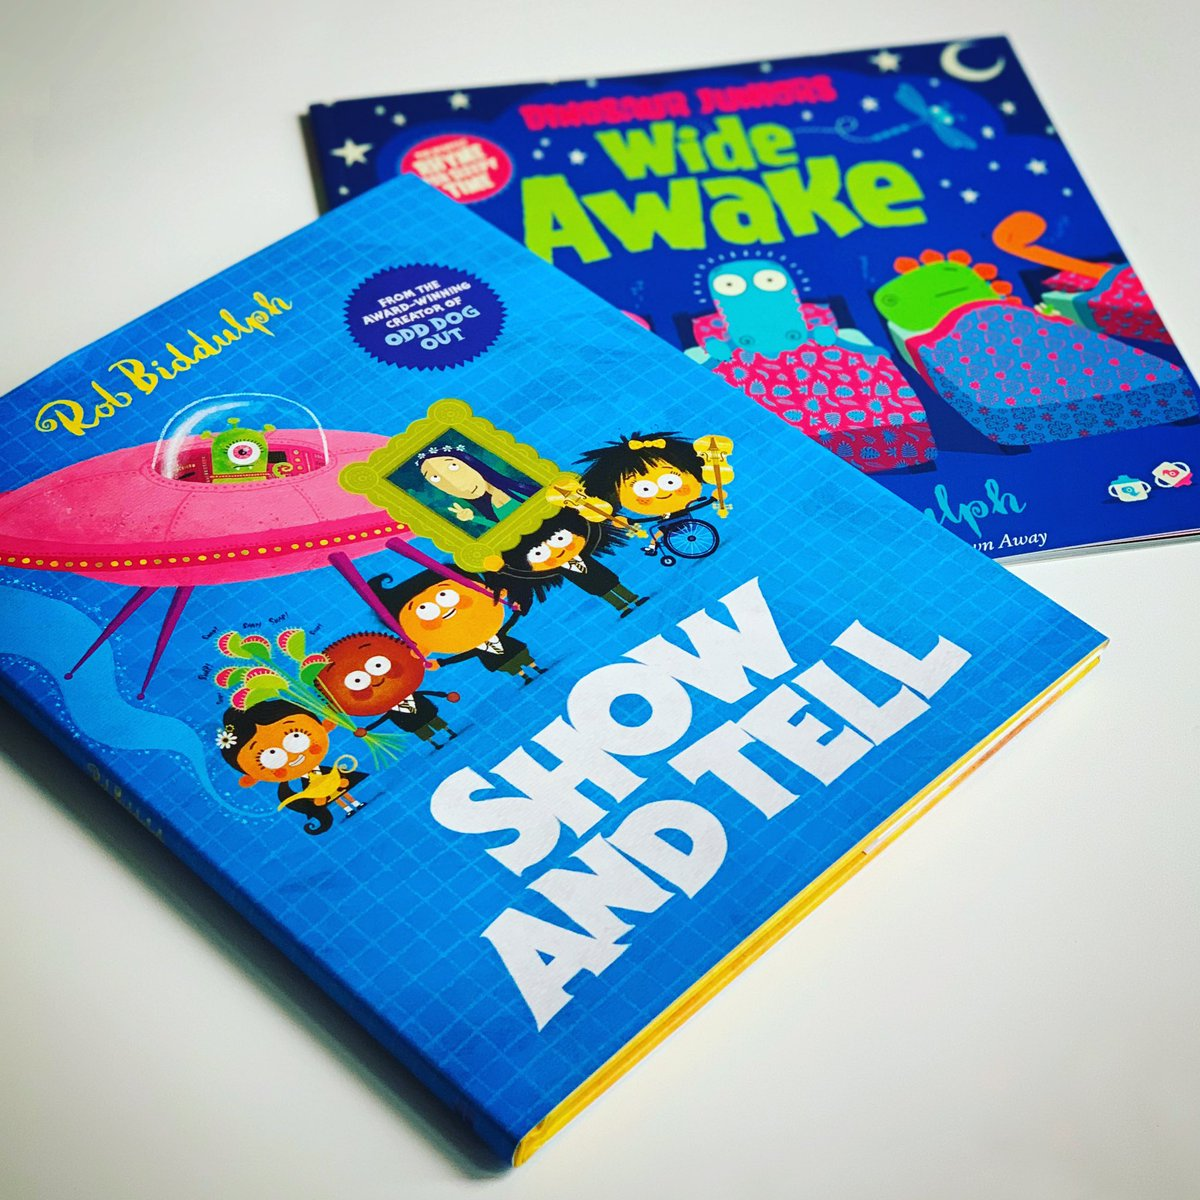 #Competition time! I have 2 books publishing tomorrow, so to celebrate I'm giving away a signed copy of 'Show and Tell' in HB & 'Wide Awake' in PB. To be in with a chance of #winning just RT & FOLLOW. Entries must be received before midnight on 21 August. Good luck! #WinWednesday